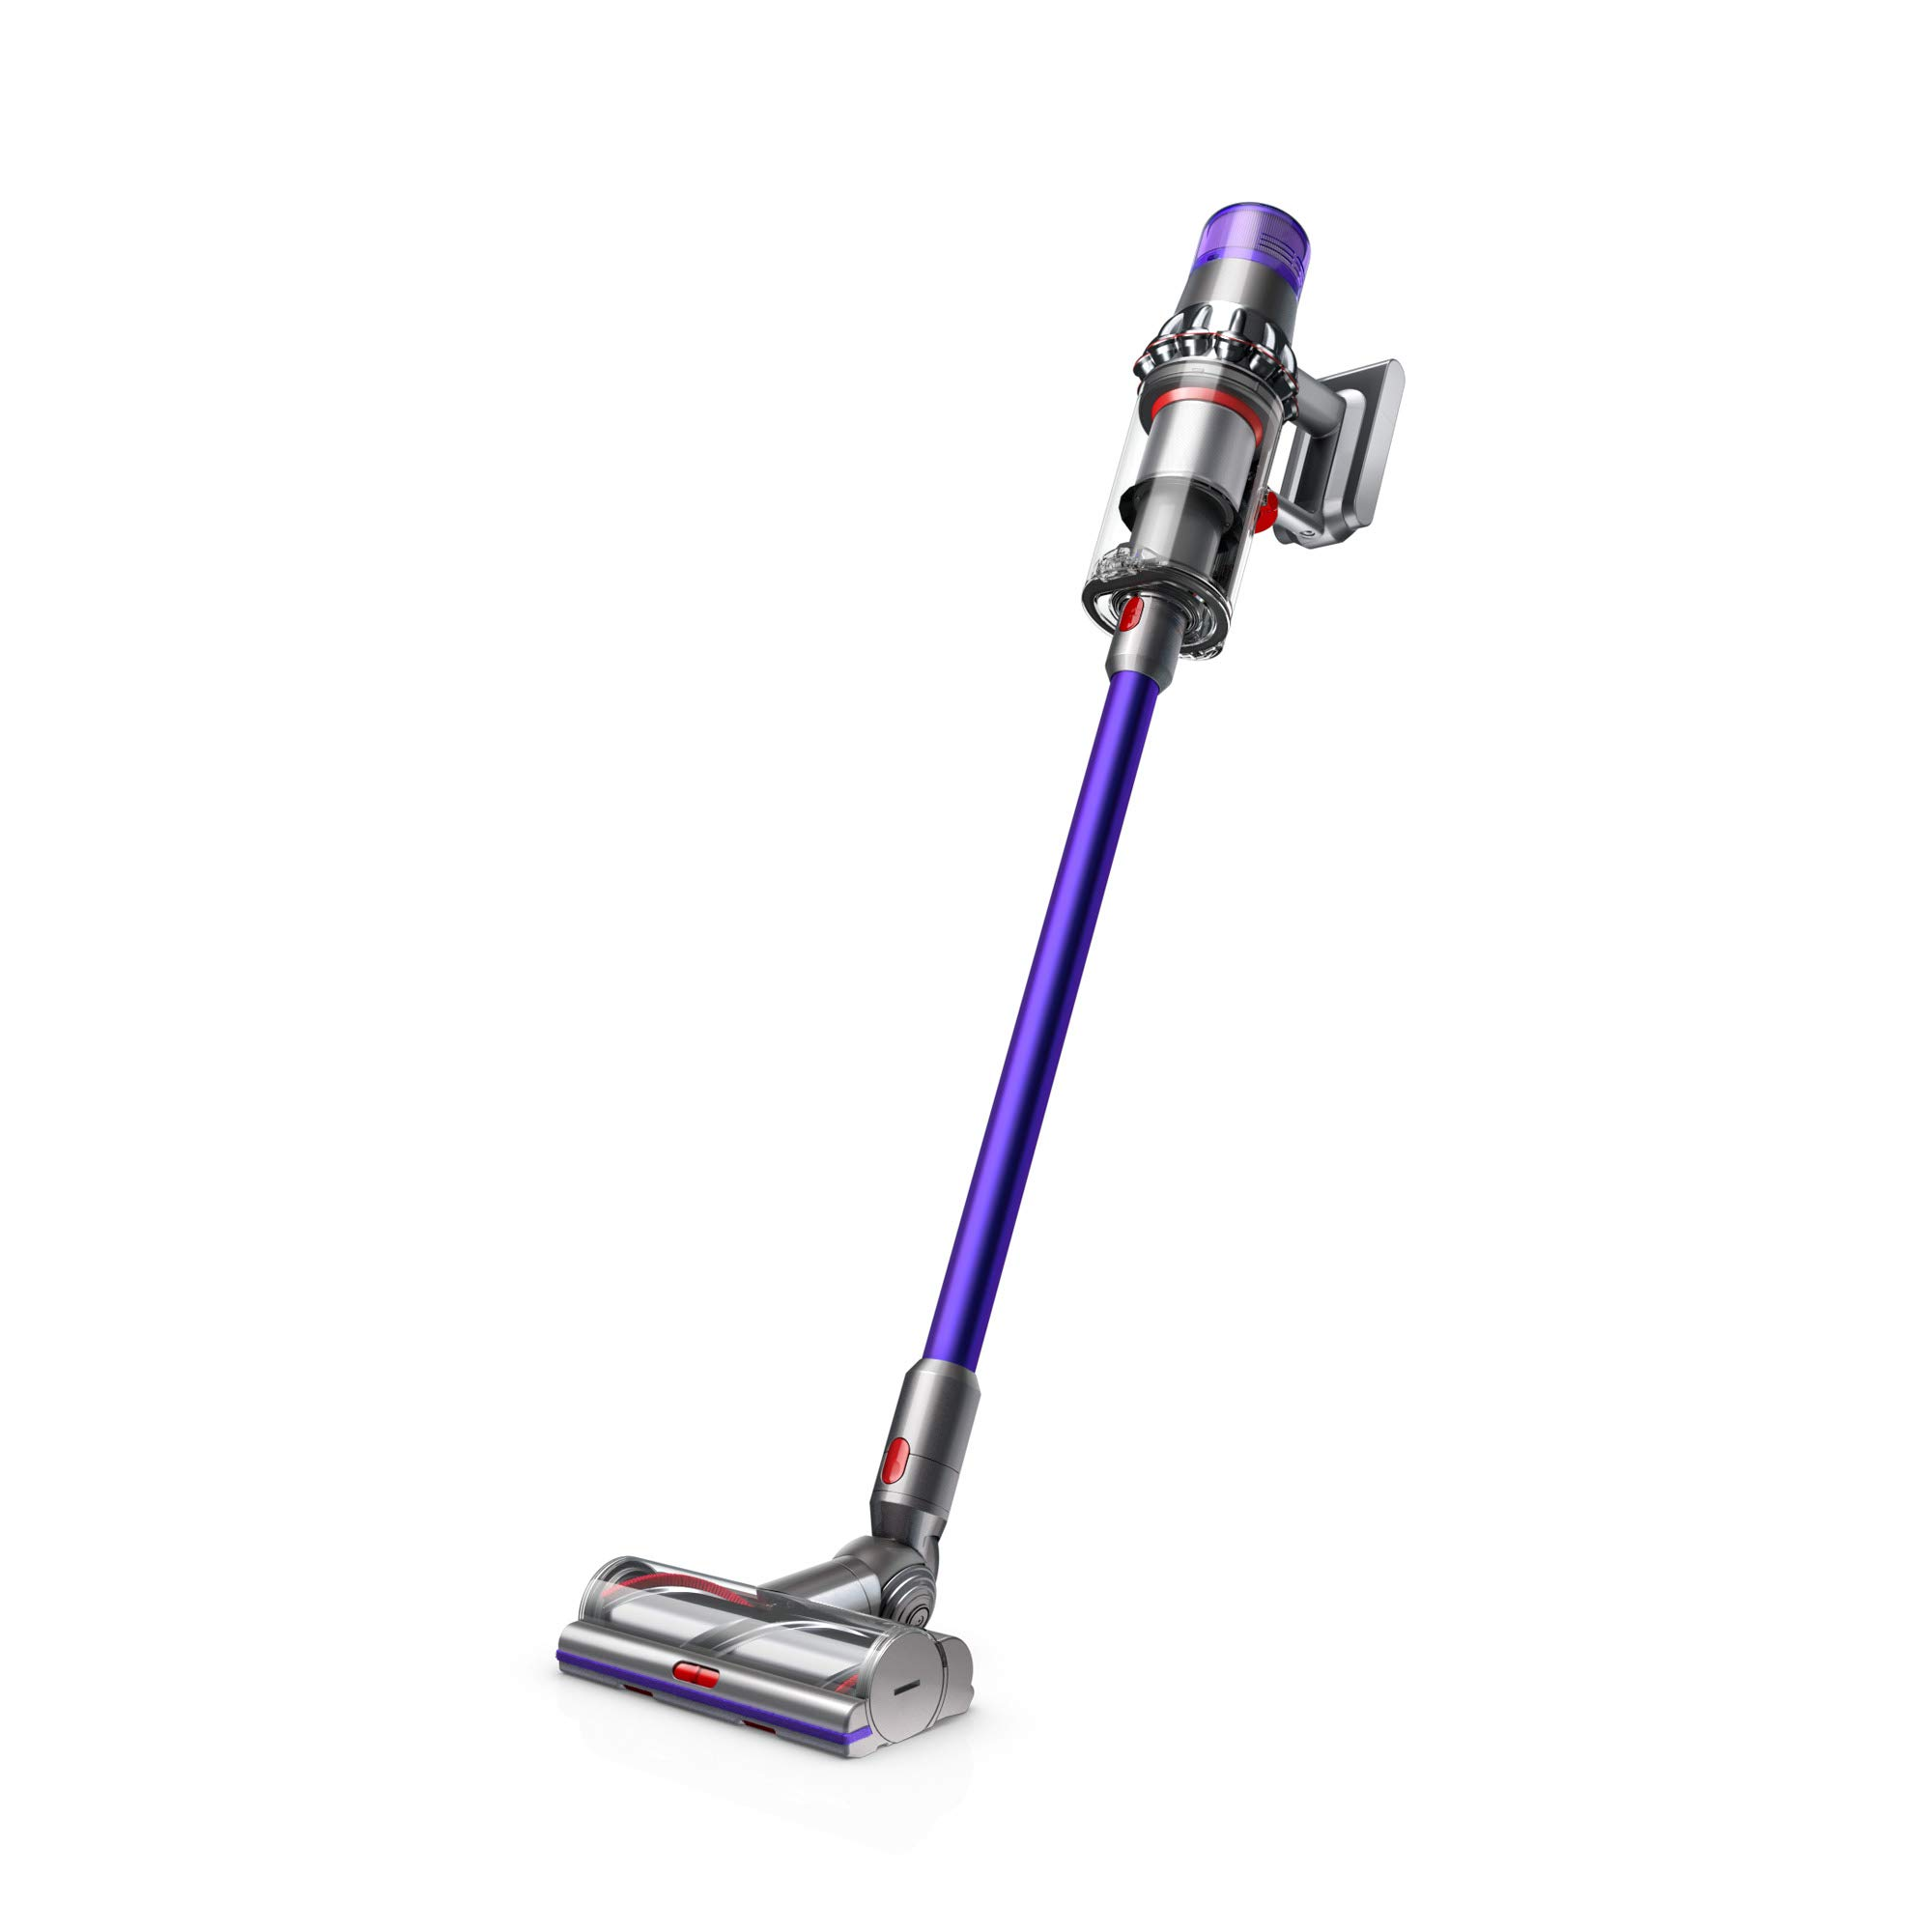 Dyson V11 Animal Cordless Vacuum Cleaner, Purple by Dyson